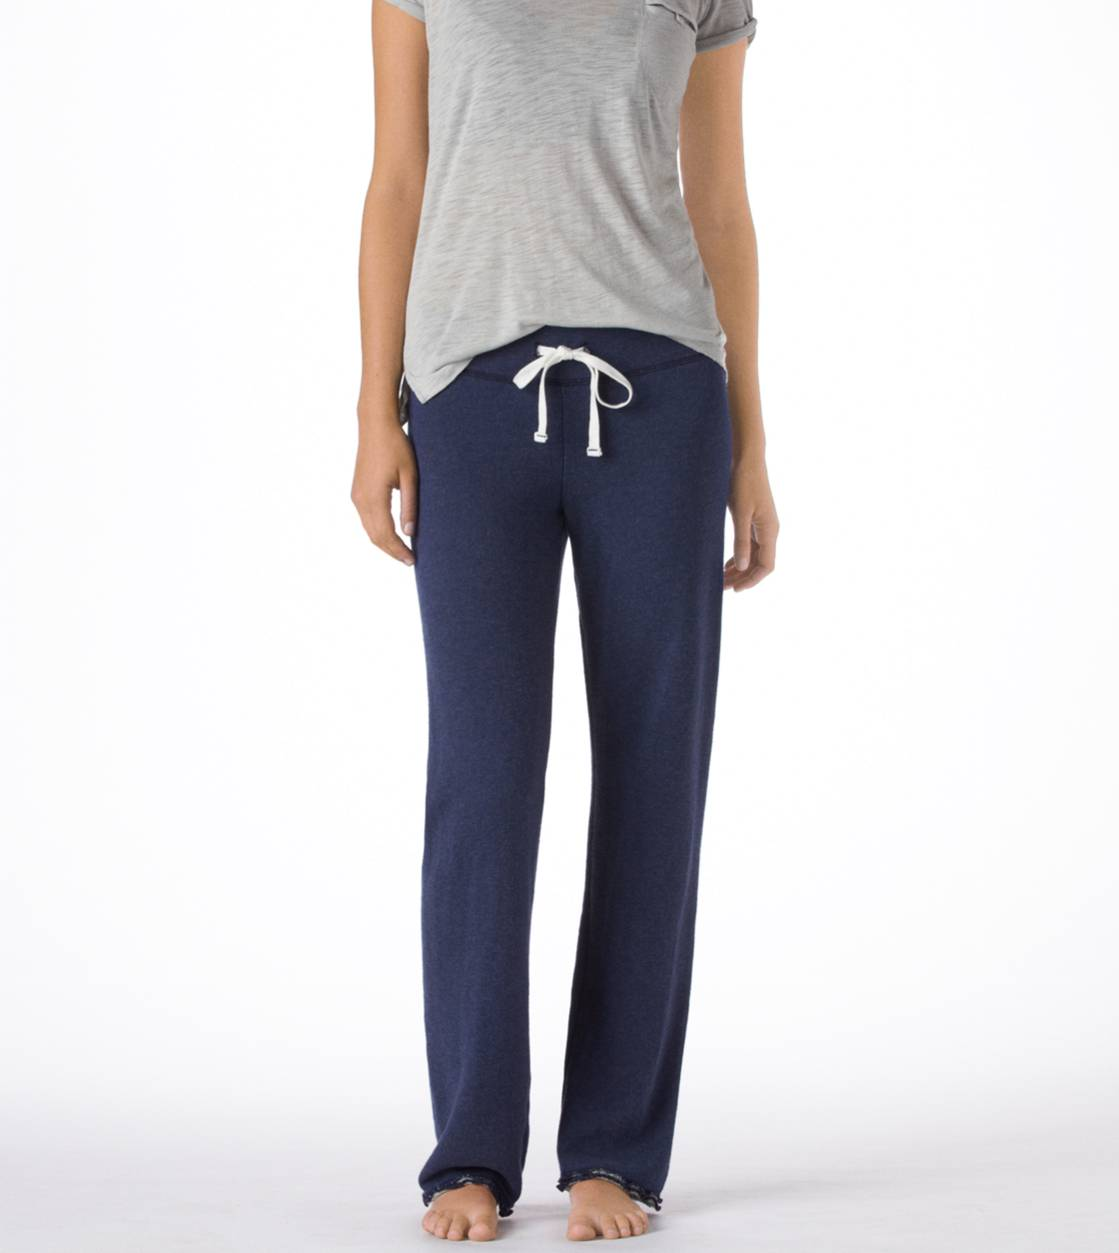 Navy Heather Aerie Classic Sweatpant